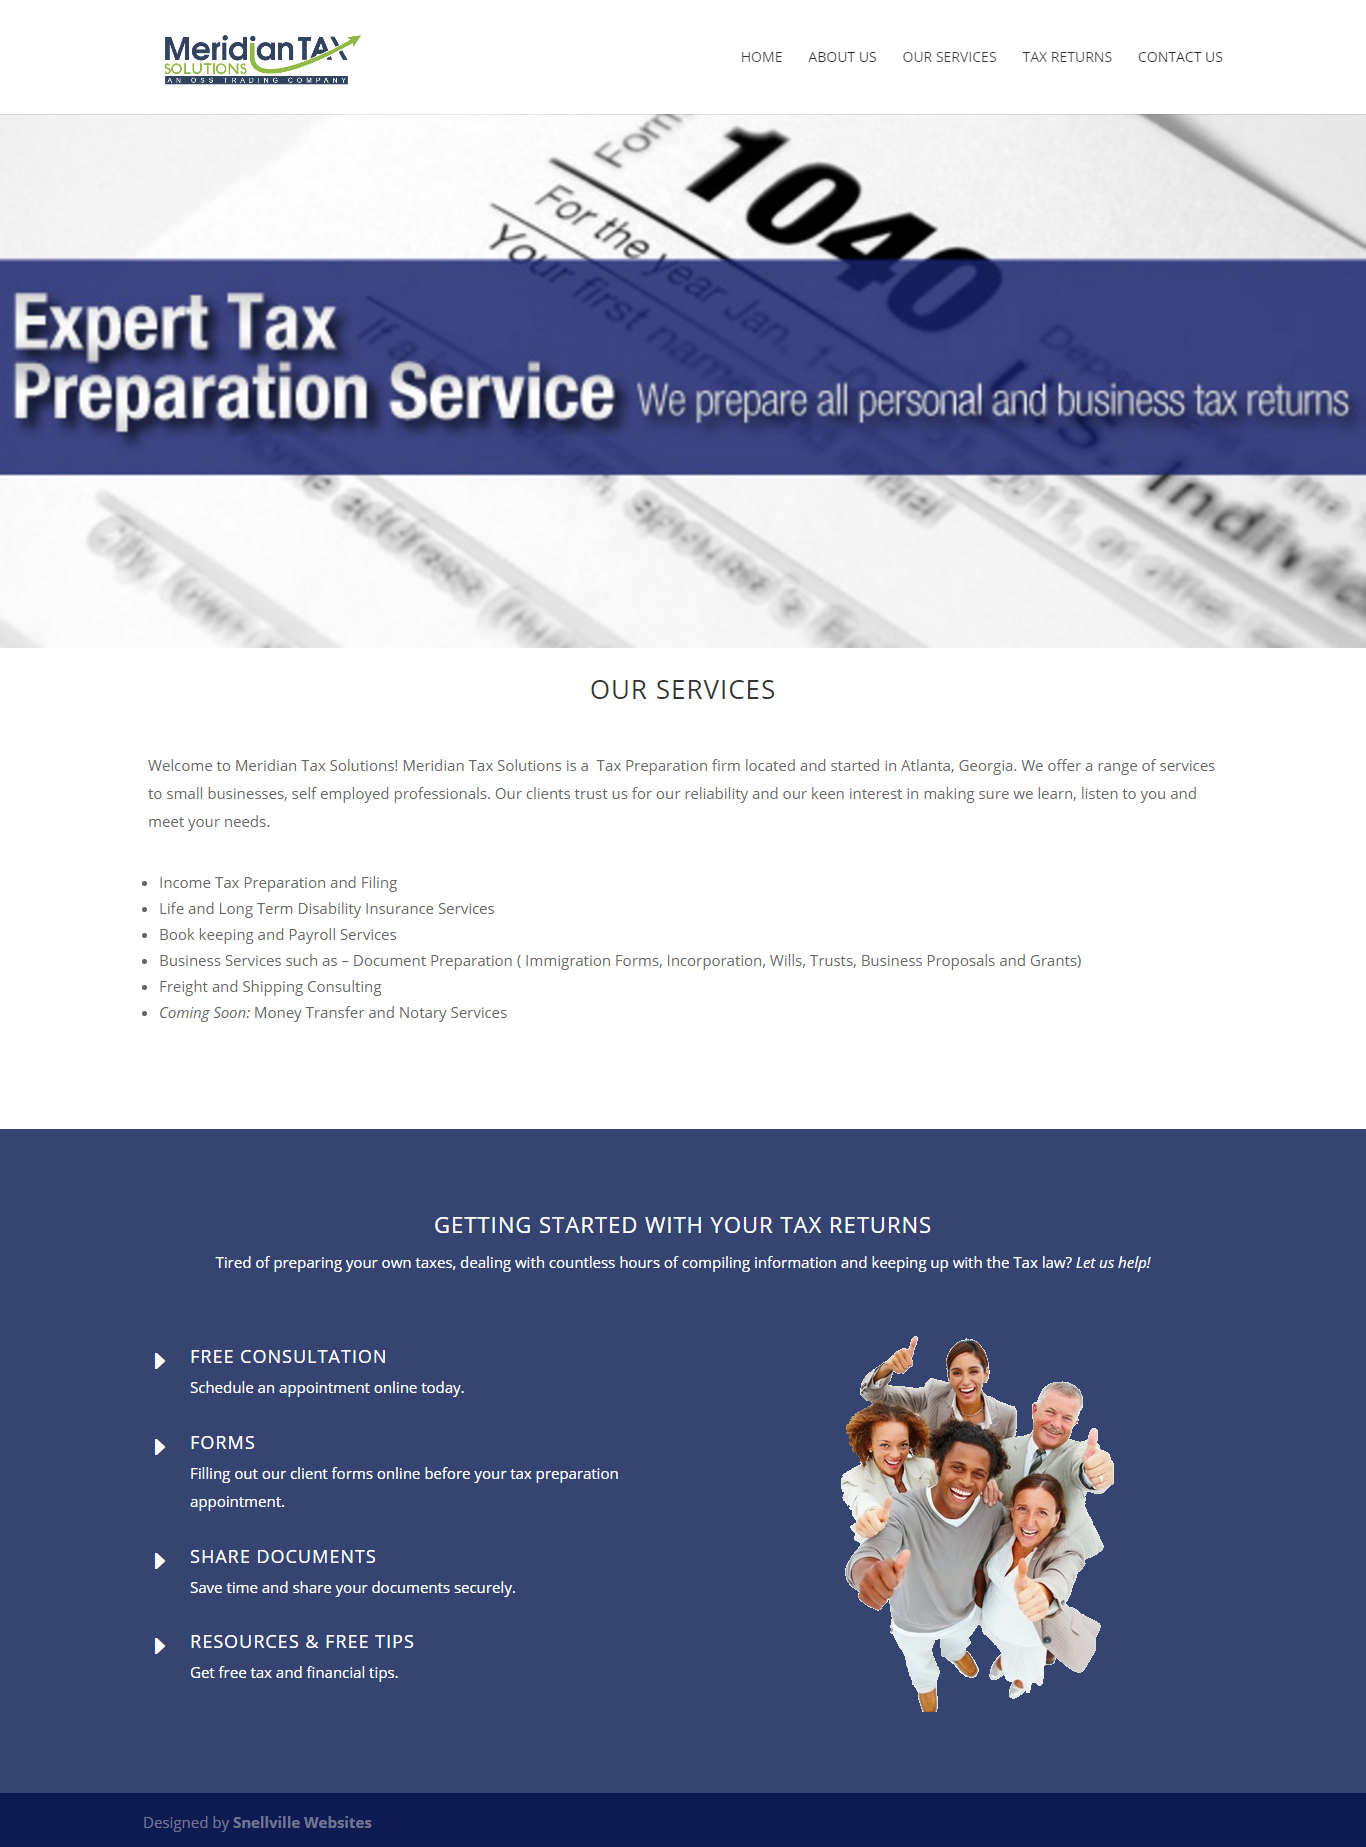 Meridian Tax Solutions